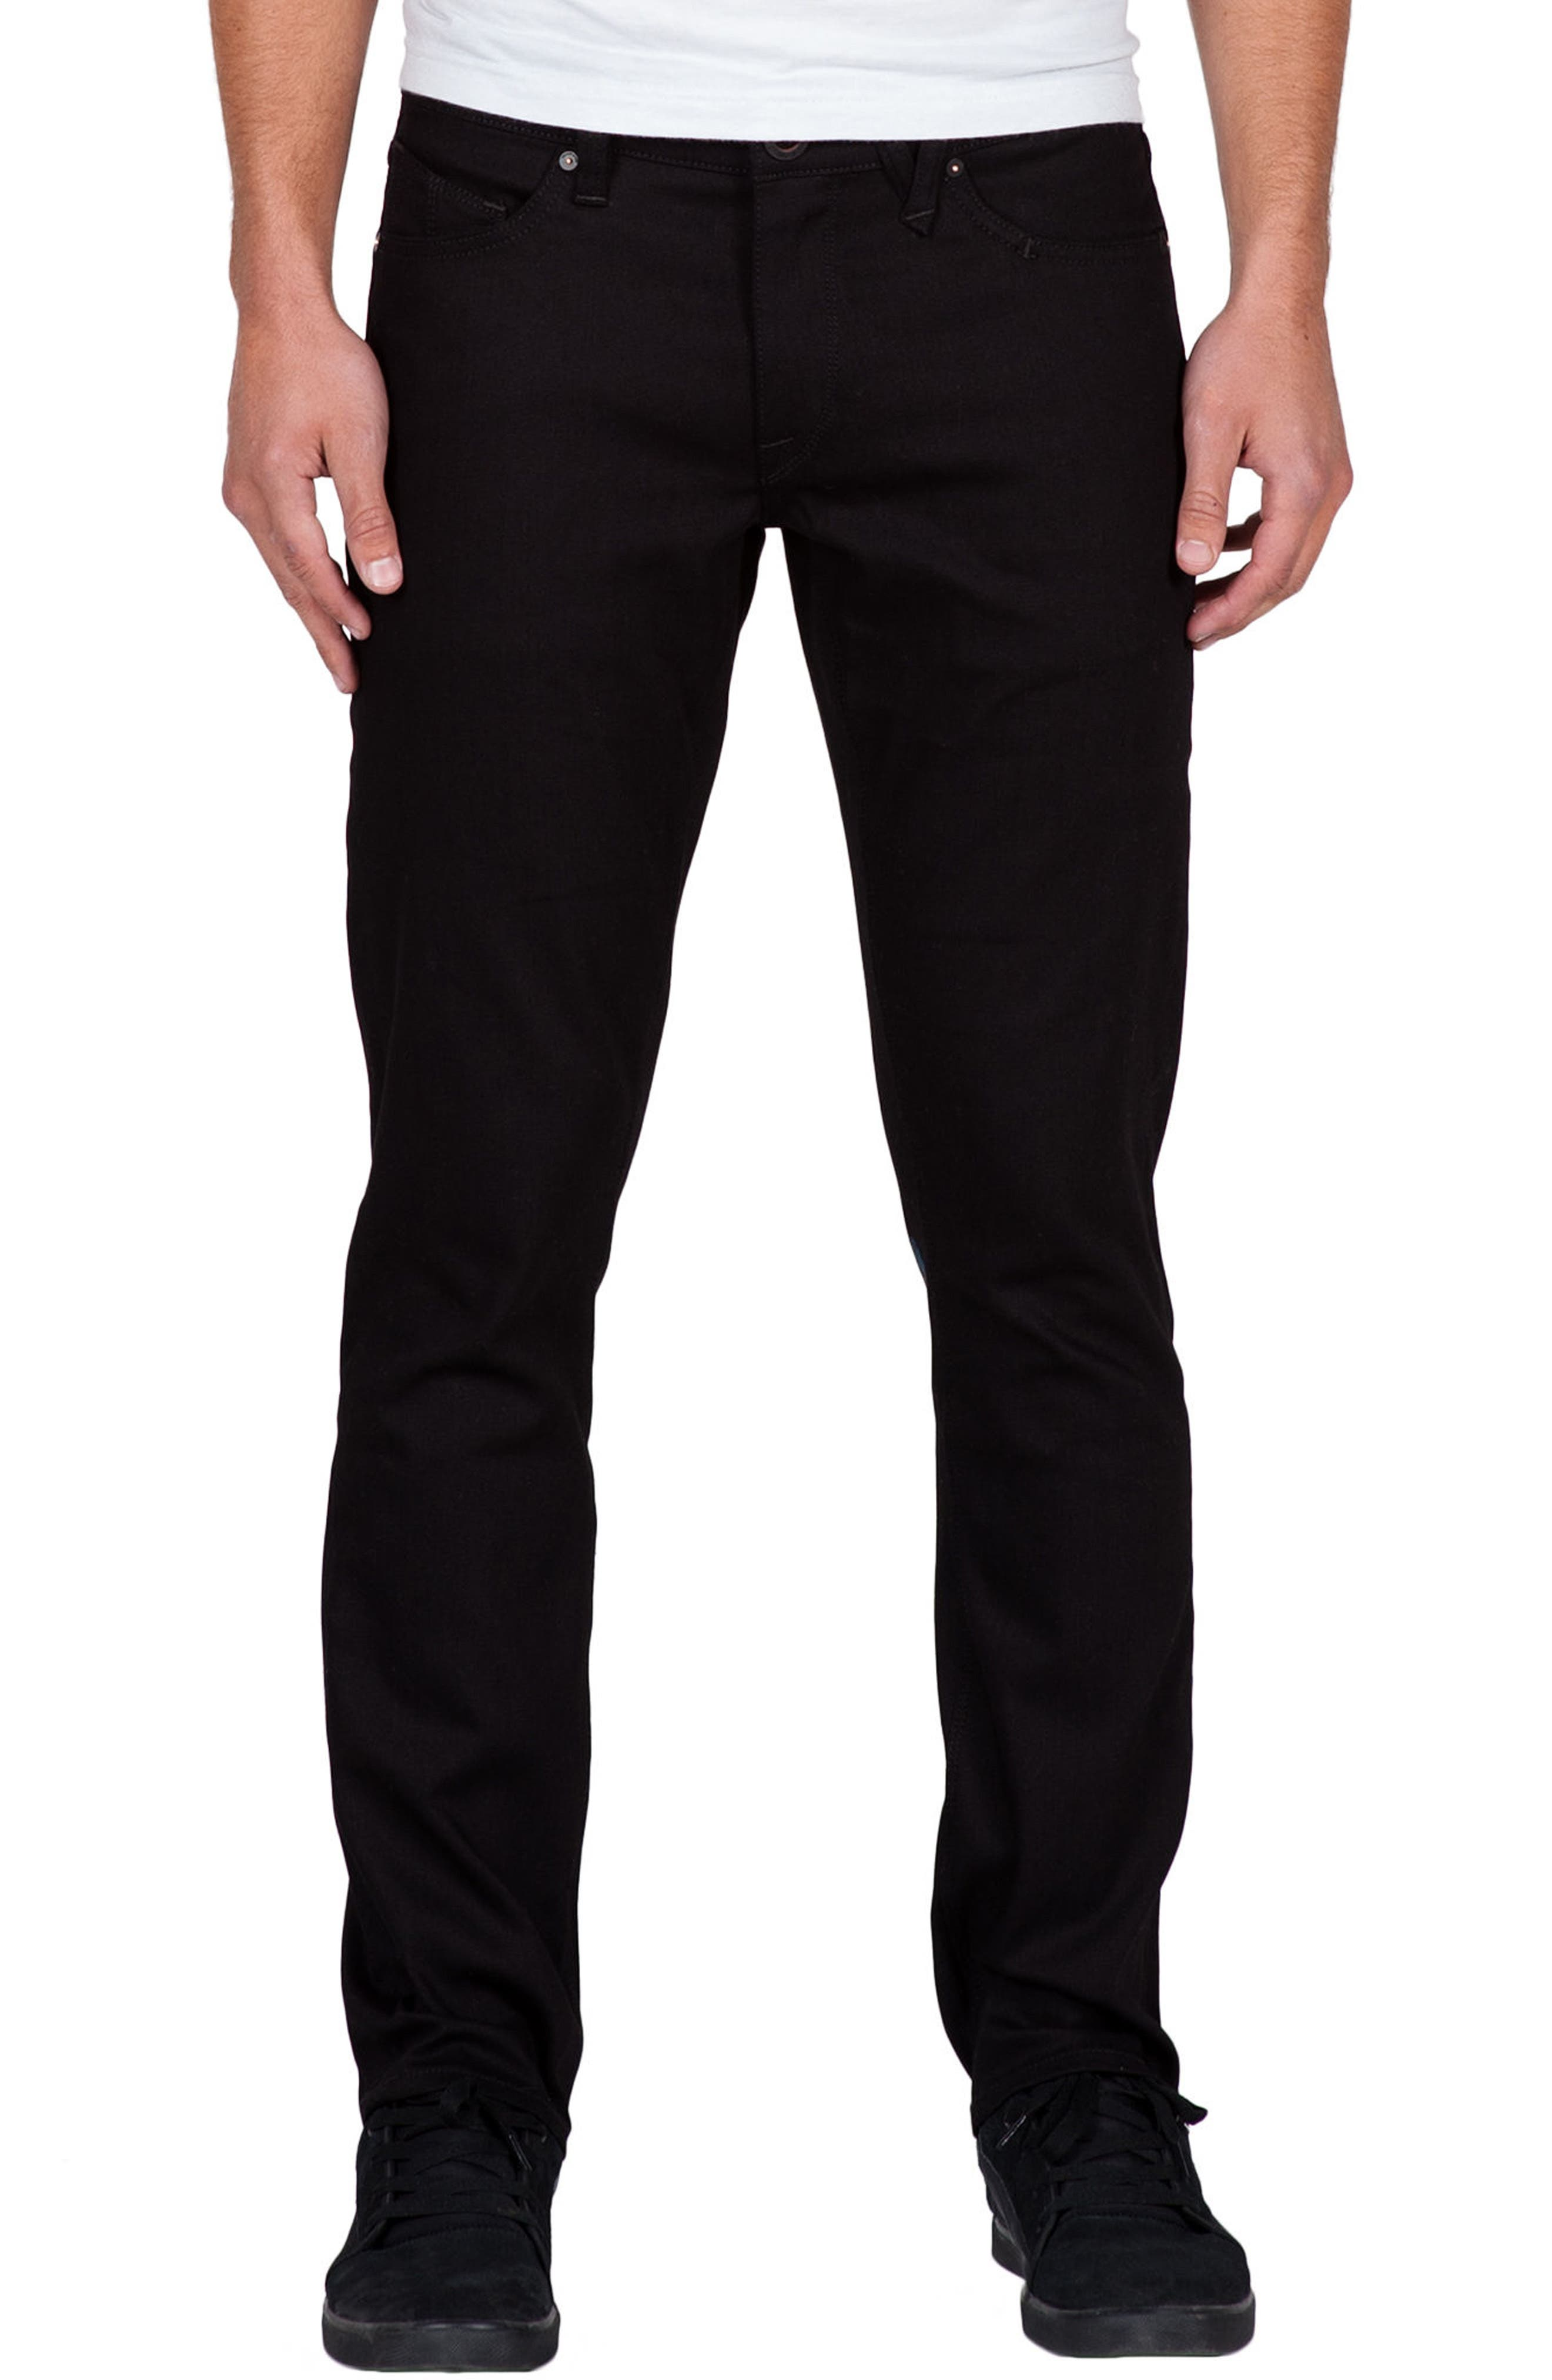 Vorta Slim Fit Jeans,                         Main,                         color, 001